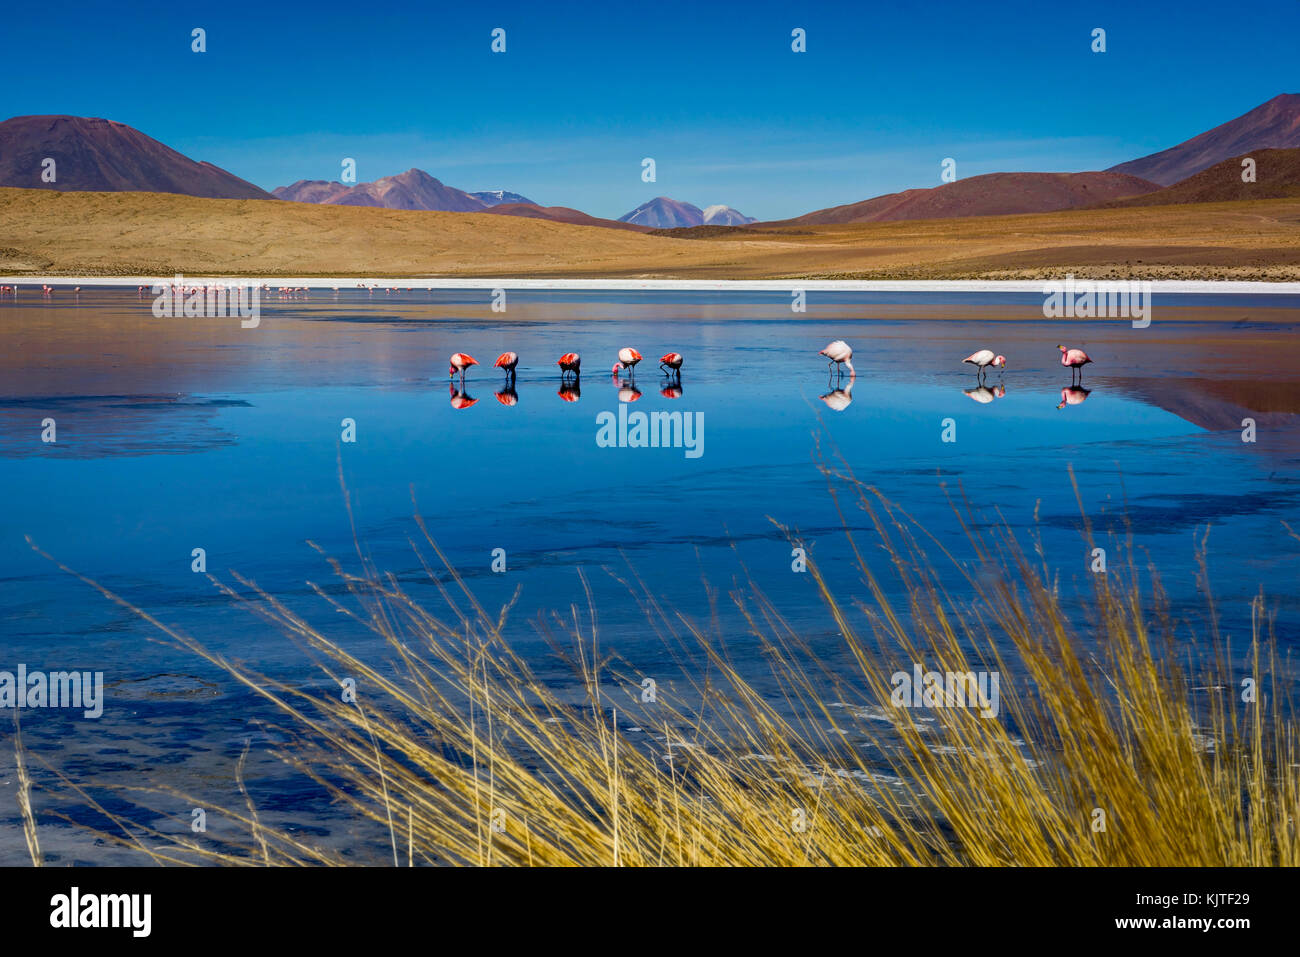 Photo taken in August 2017 in Altiplano Bolivia, South America: Pink Flamingos Laguna Hedionda Altiplano Bolivia - Stock Image